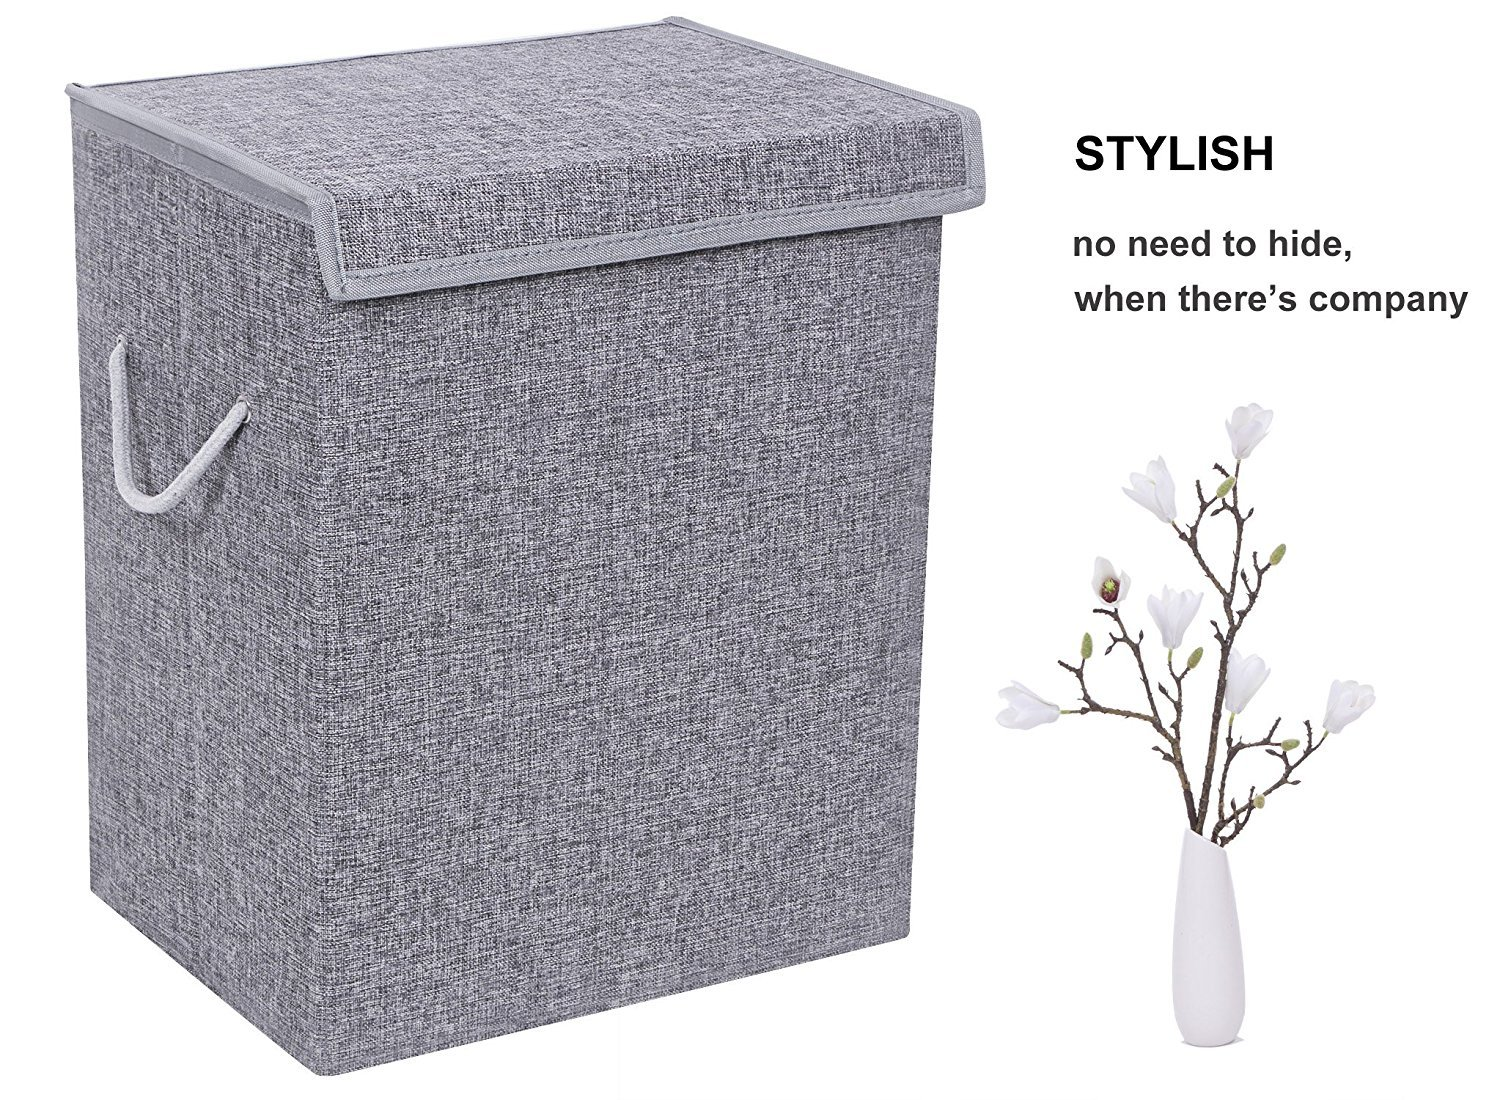 BEWISHOME Foldable Laundry Hamper,Large Laundry Basket Storage Bin for Clothes,Dirty Clothes Hamper w/Lids/Velcro,Grey Hamper with Removable liners & Sturdy Handles Grey YYL01G by BEWISHOME (Image #8)